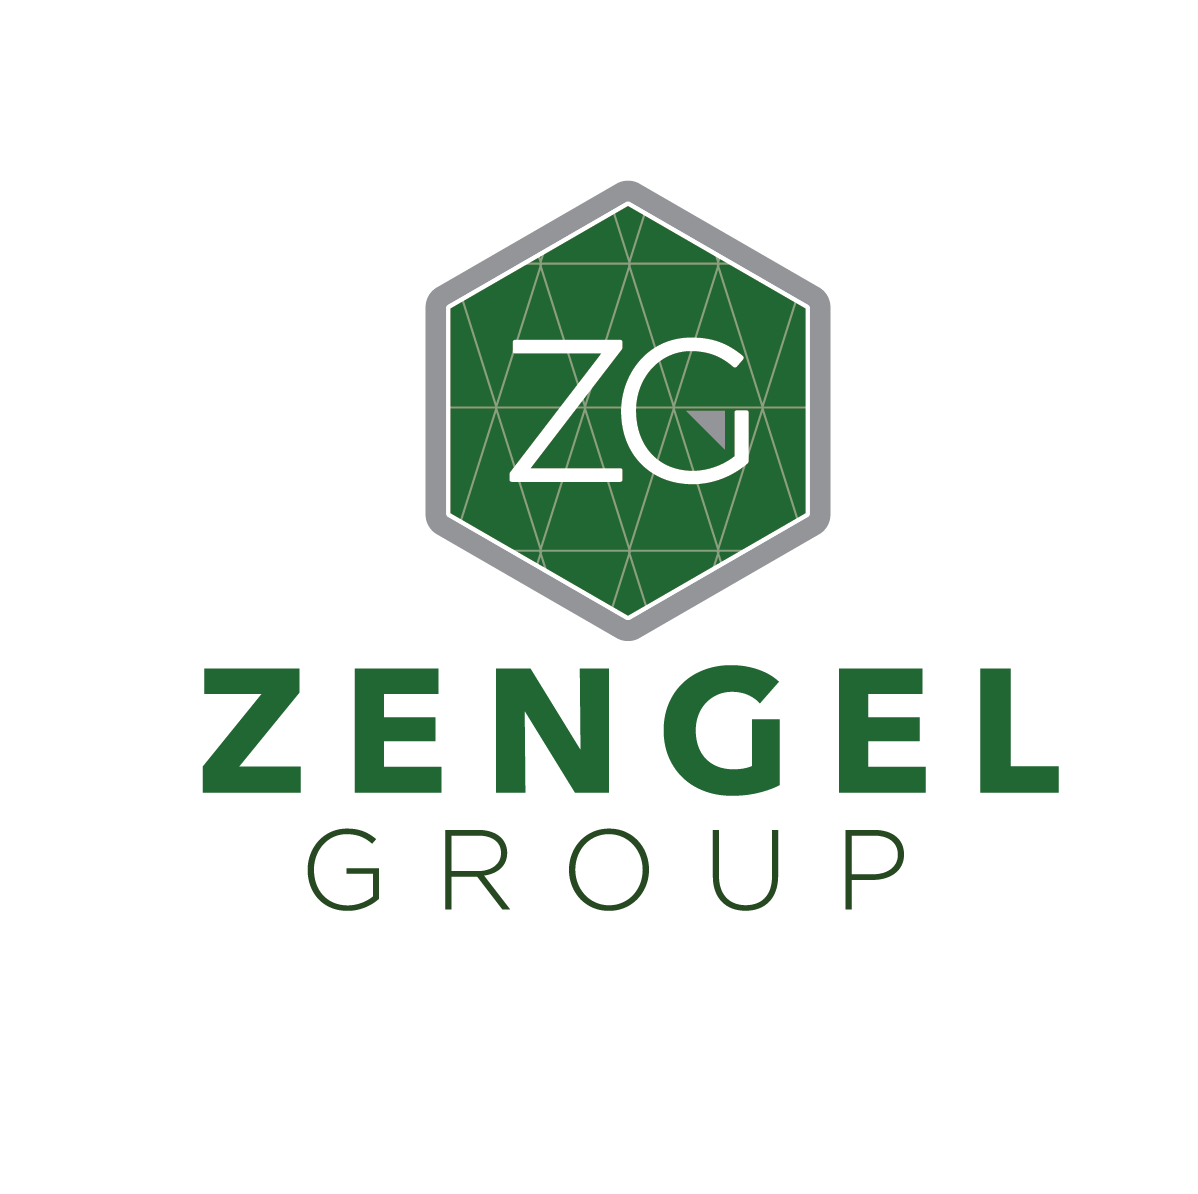 Zengel Group